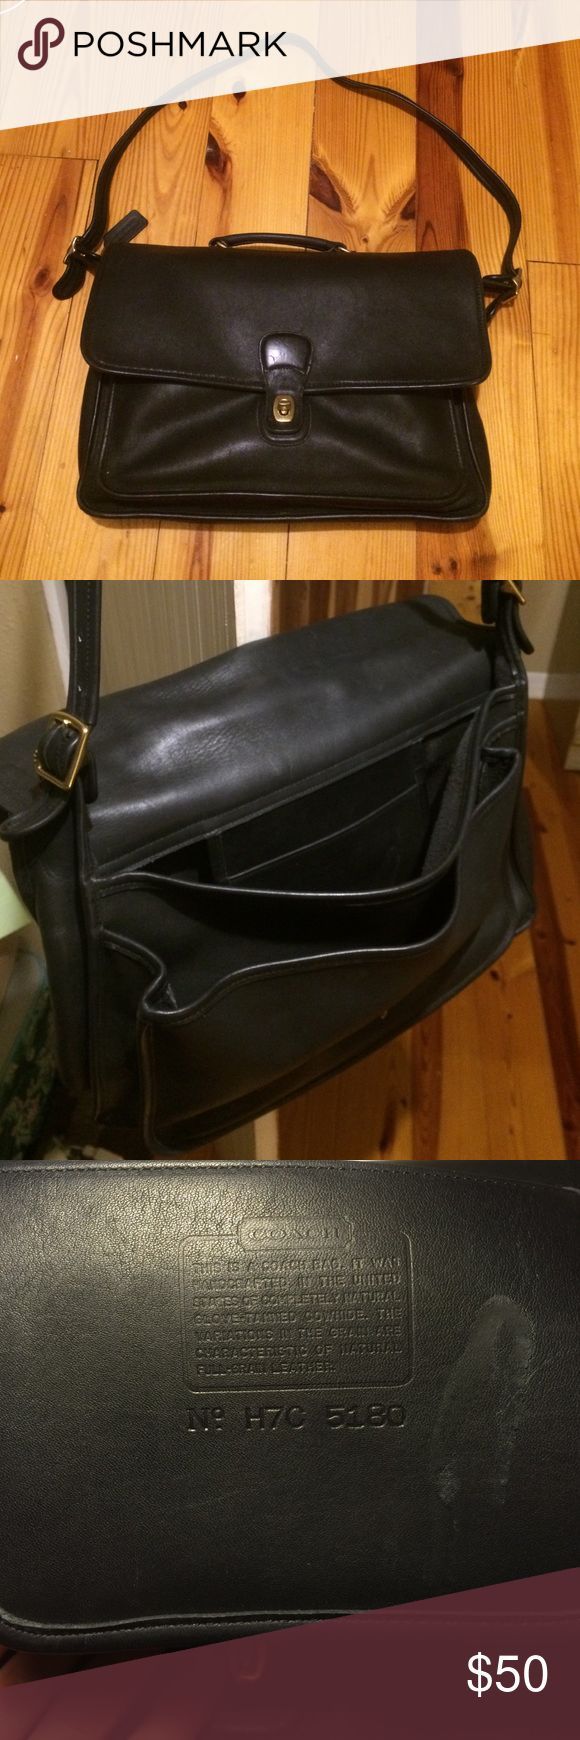 Coach Briefcase Coach Briefcase. Pre Owned and well broken in. From the 1980's. Black leather. Coach Bags Laptop Bags